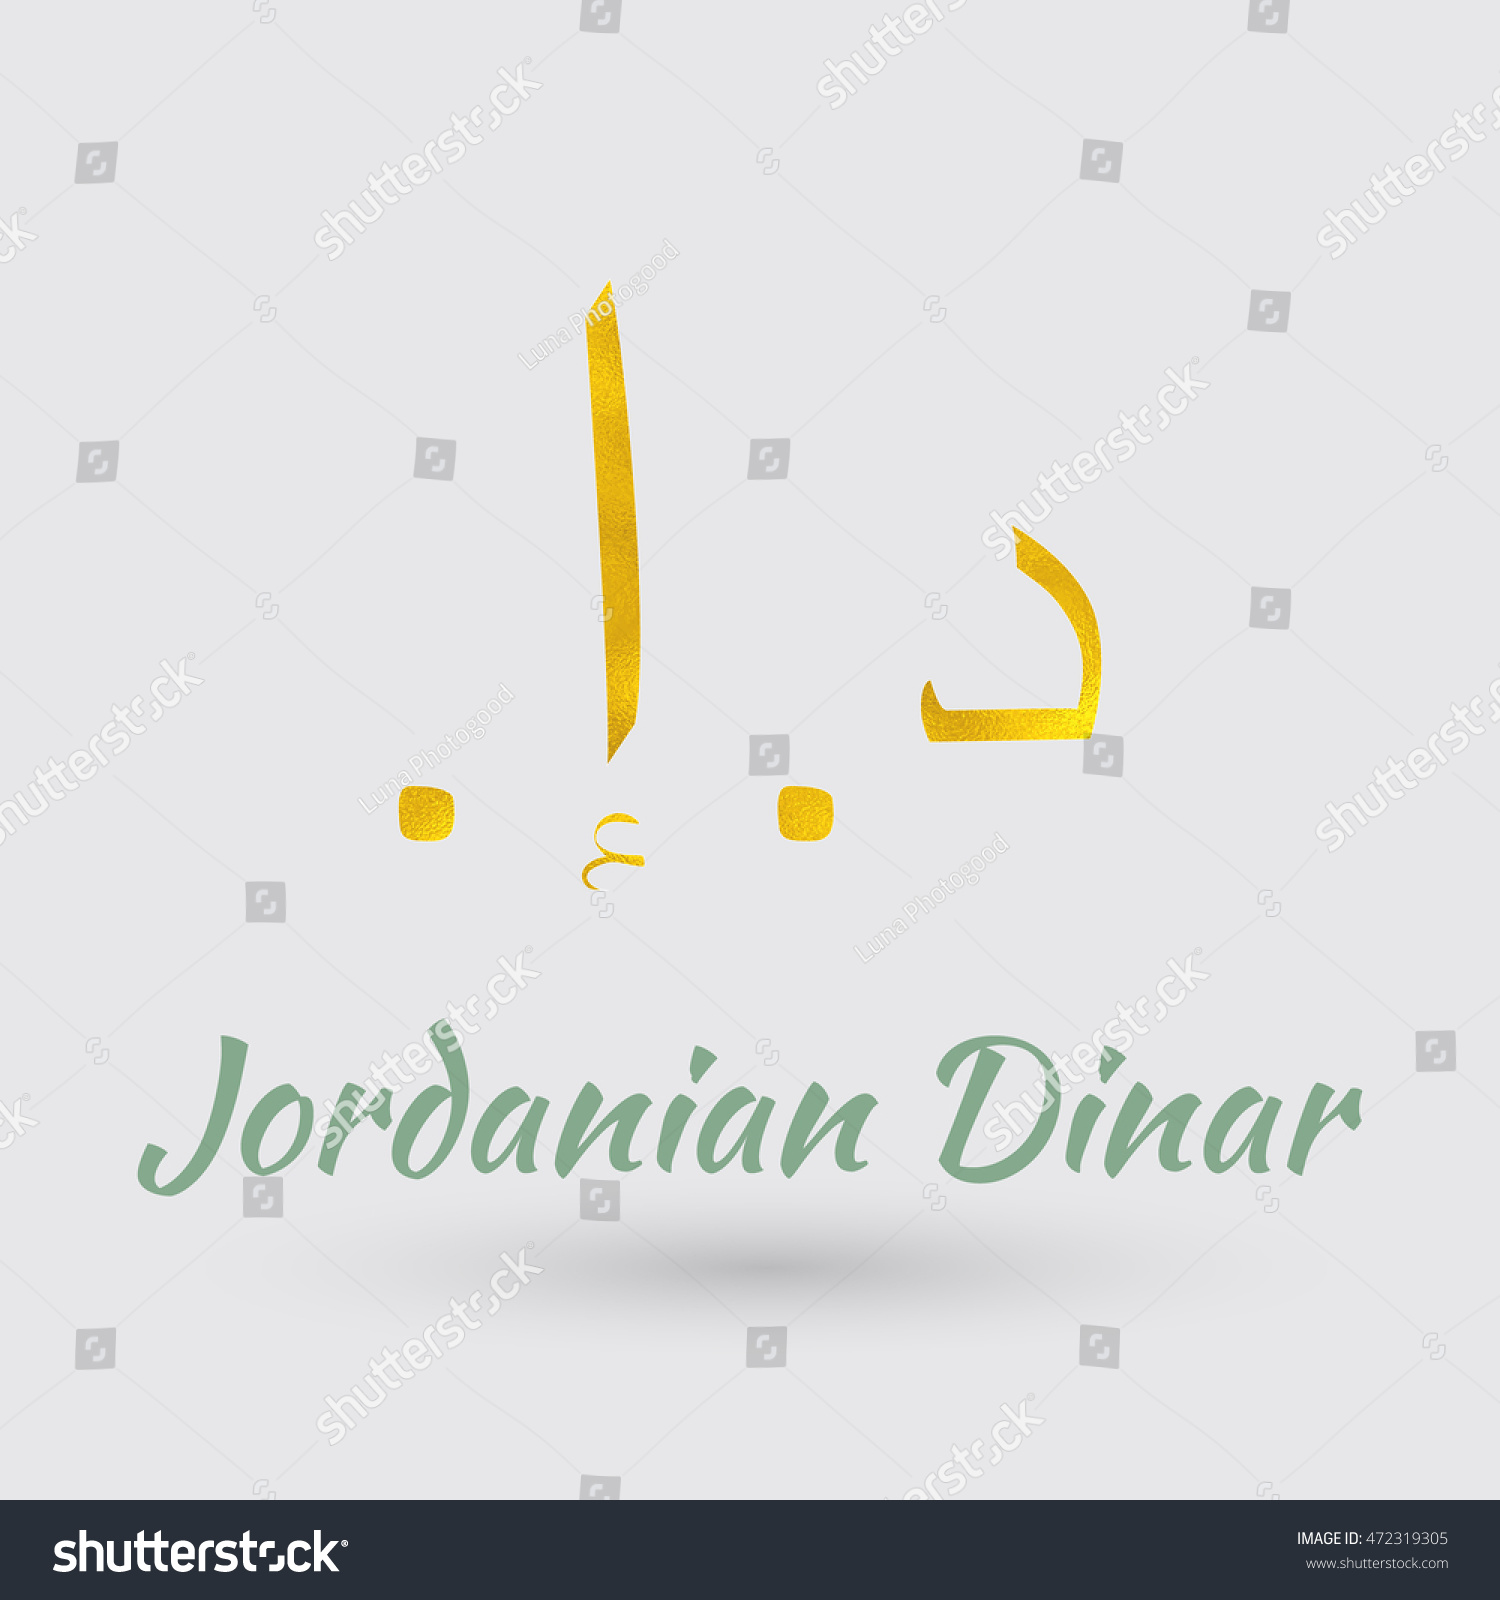 Symbol jordan currency golden texturevector eps stock vector symbol of the jordan currency with golden texturector eps 10 biocorpaavc Gallery